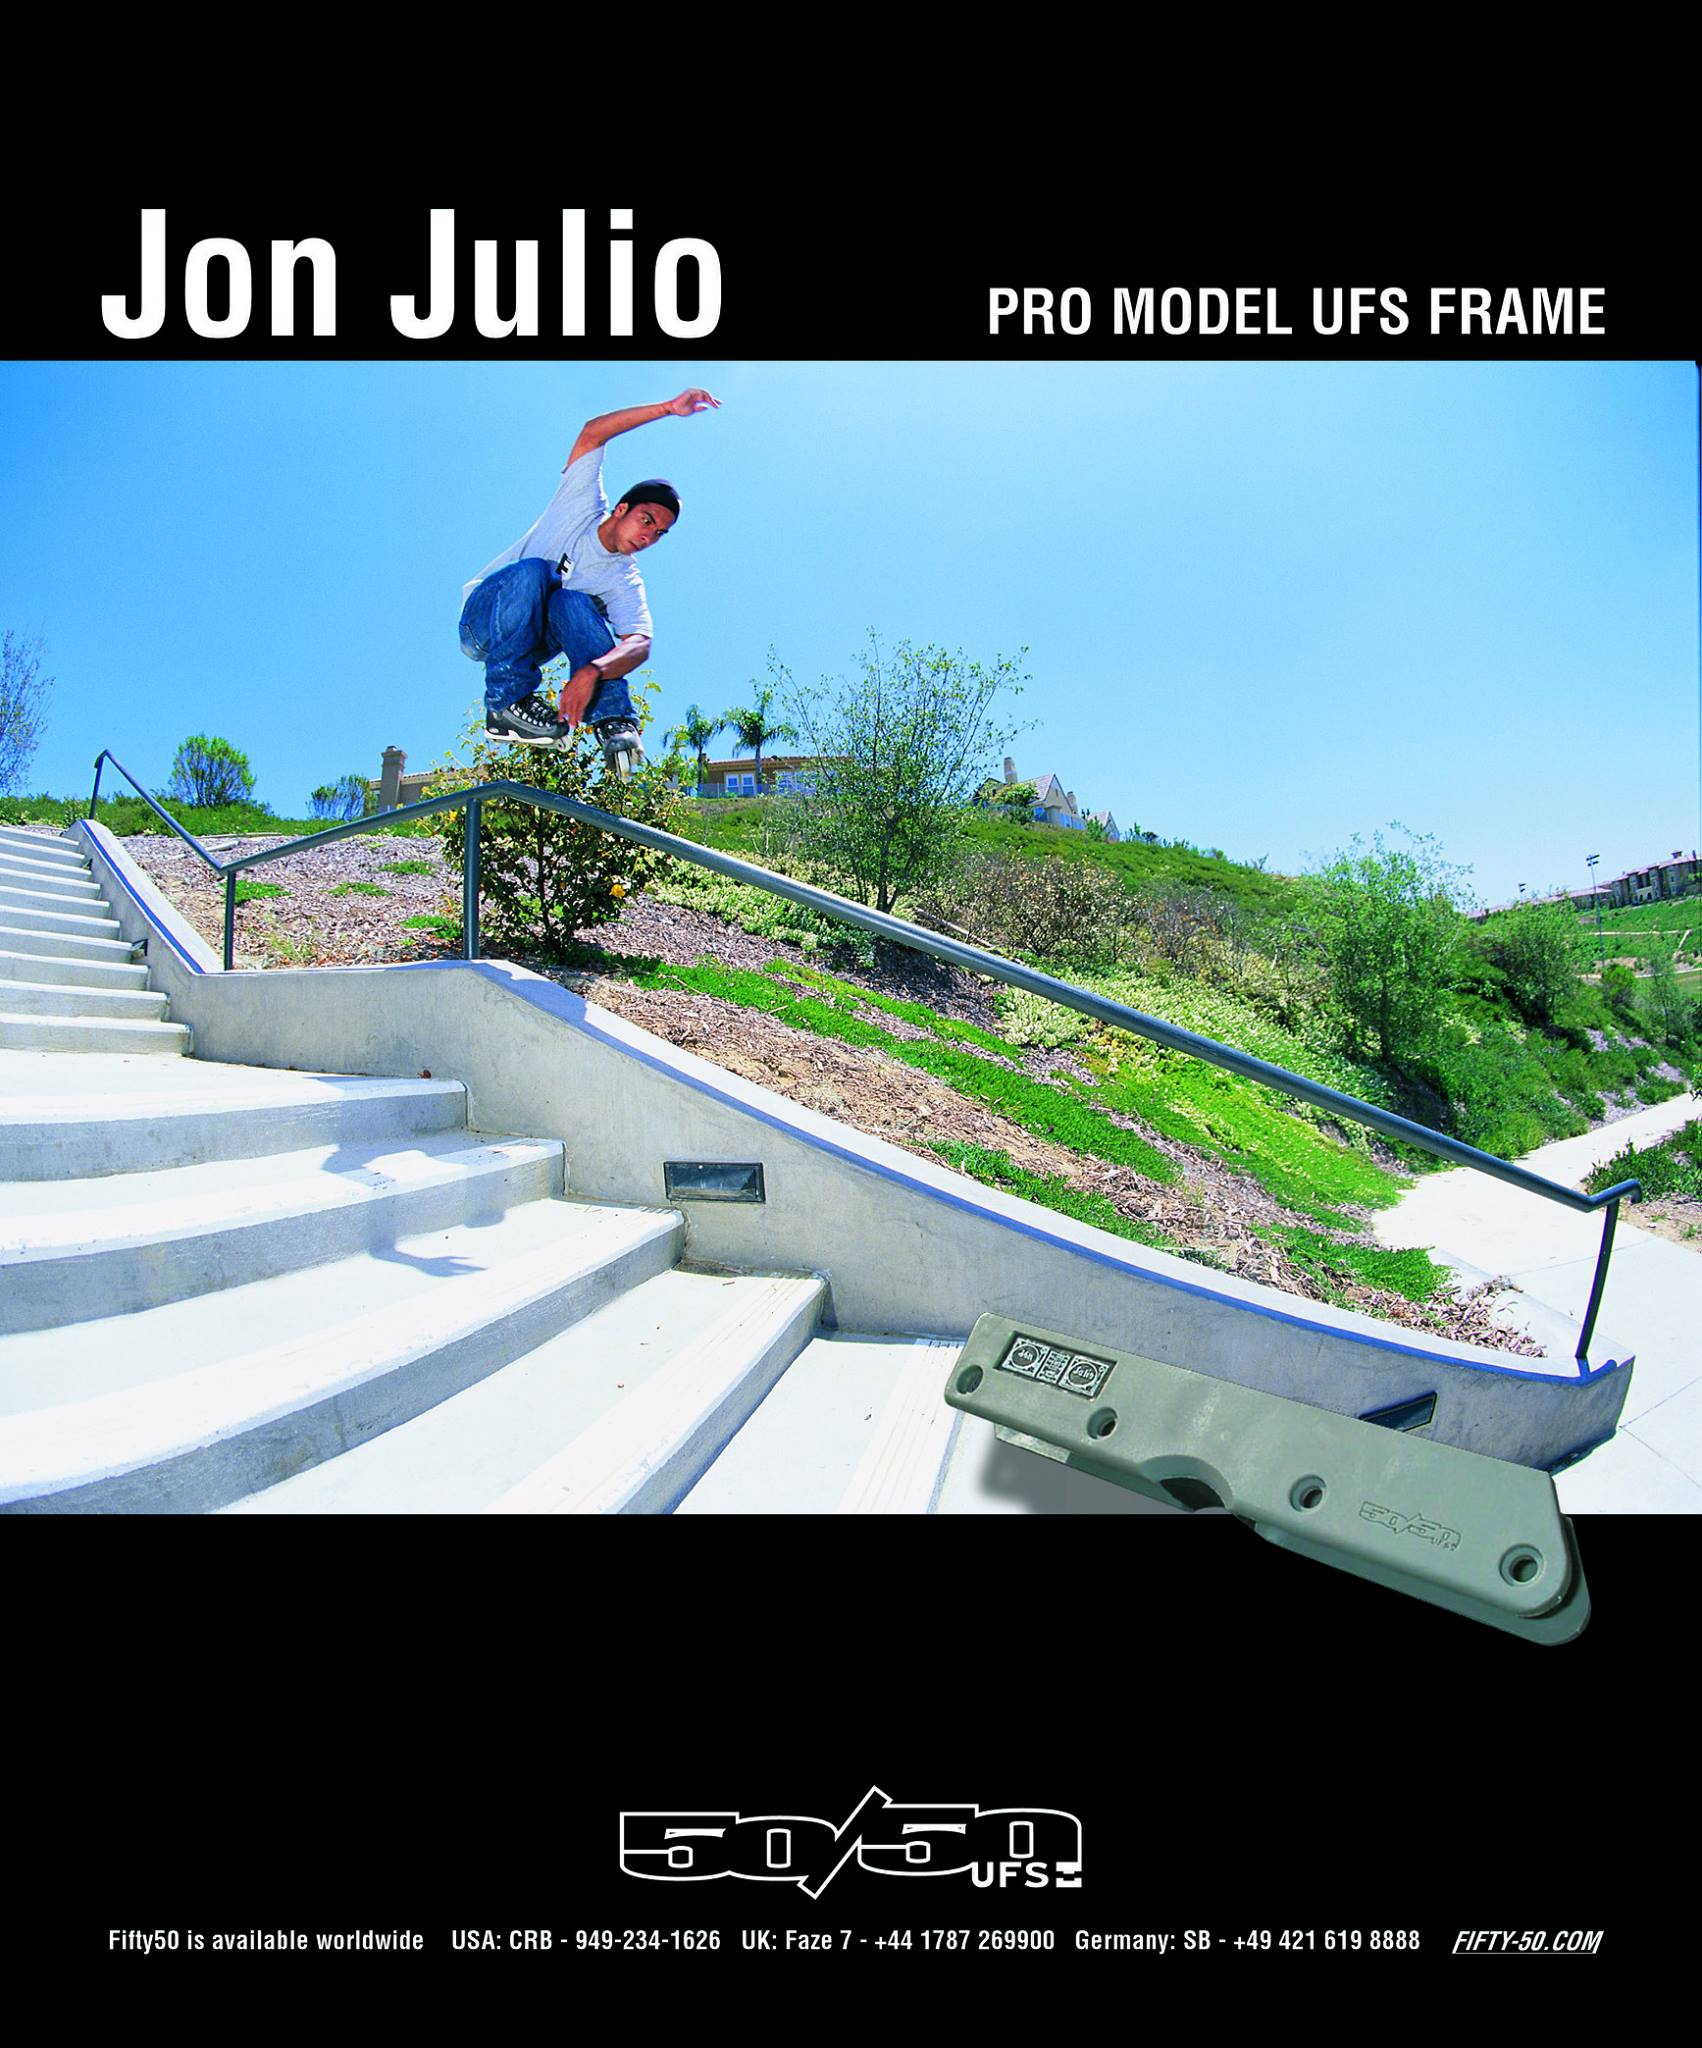 This Jon Julio ad hit around Summer of 2012 with his series 2 50/50 UFS Pro Model frame, now in grey and black.